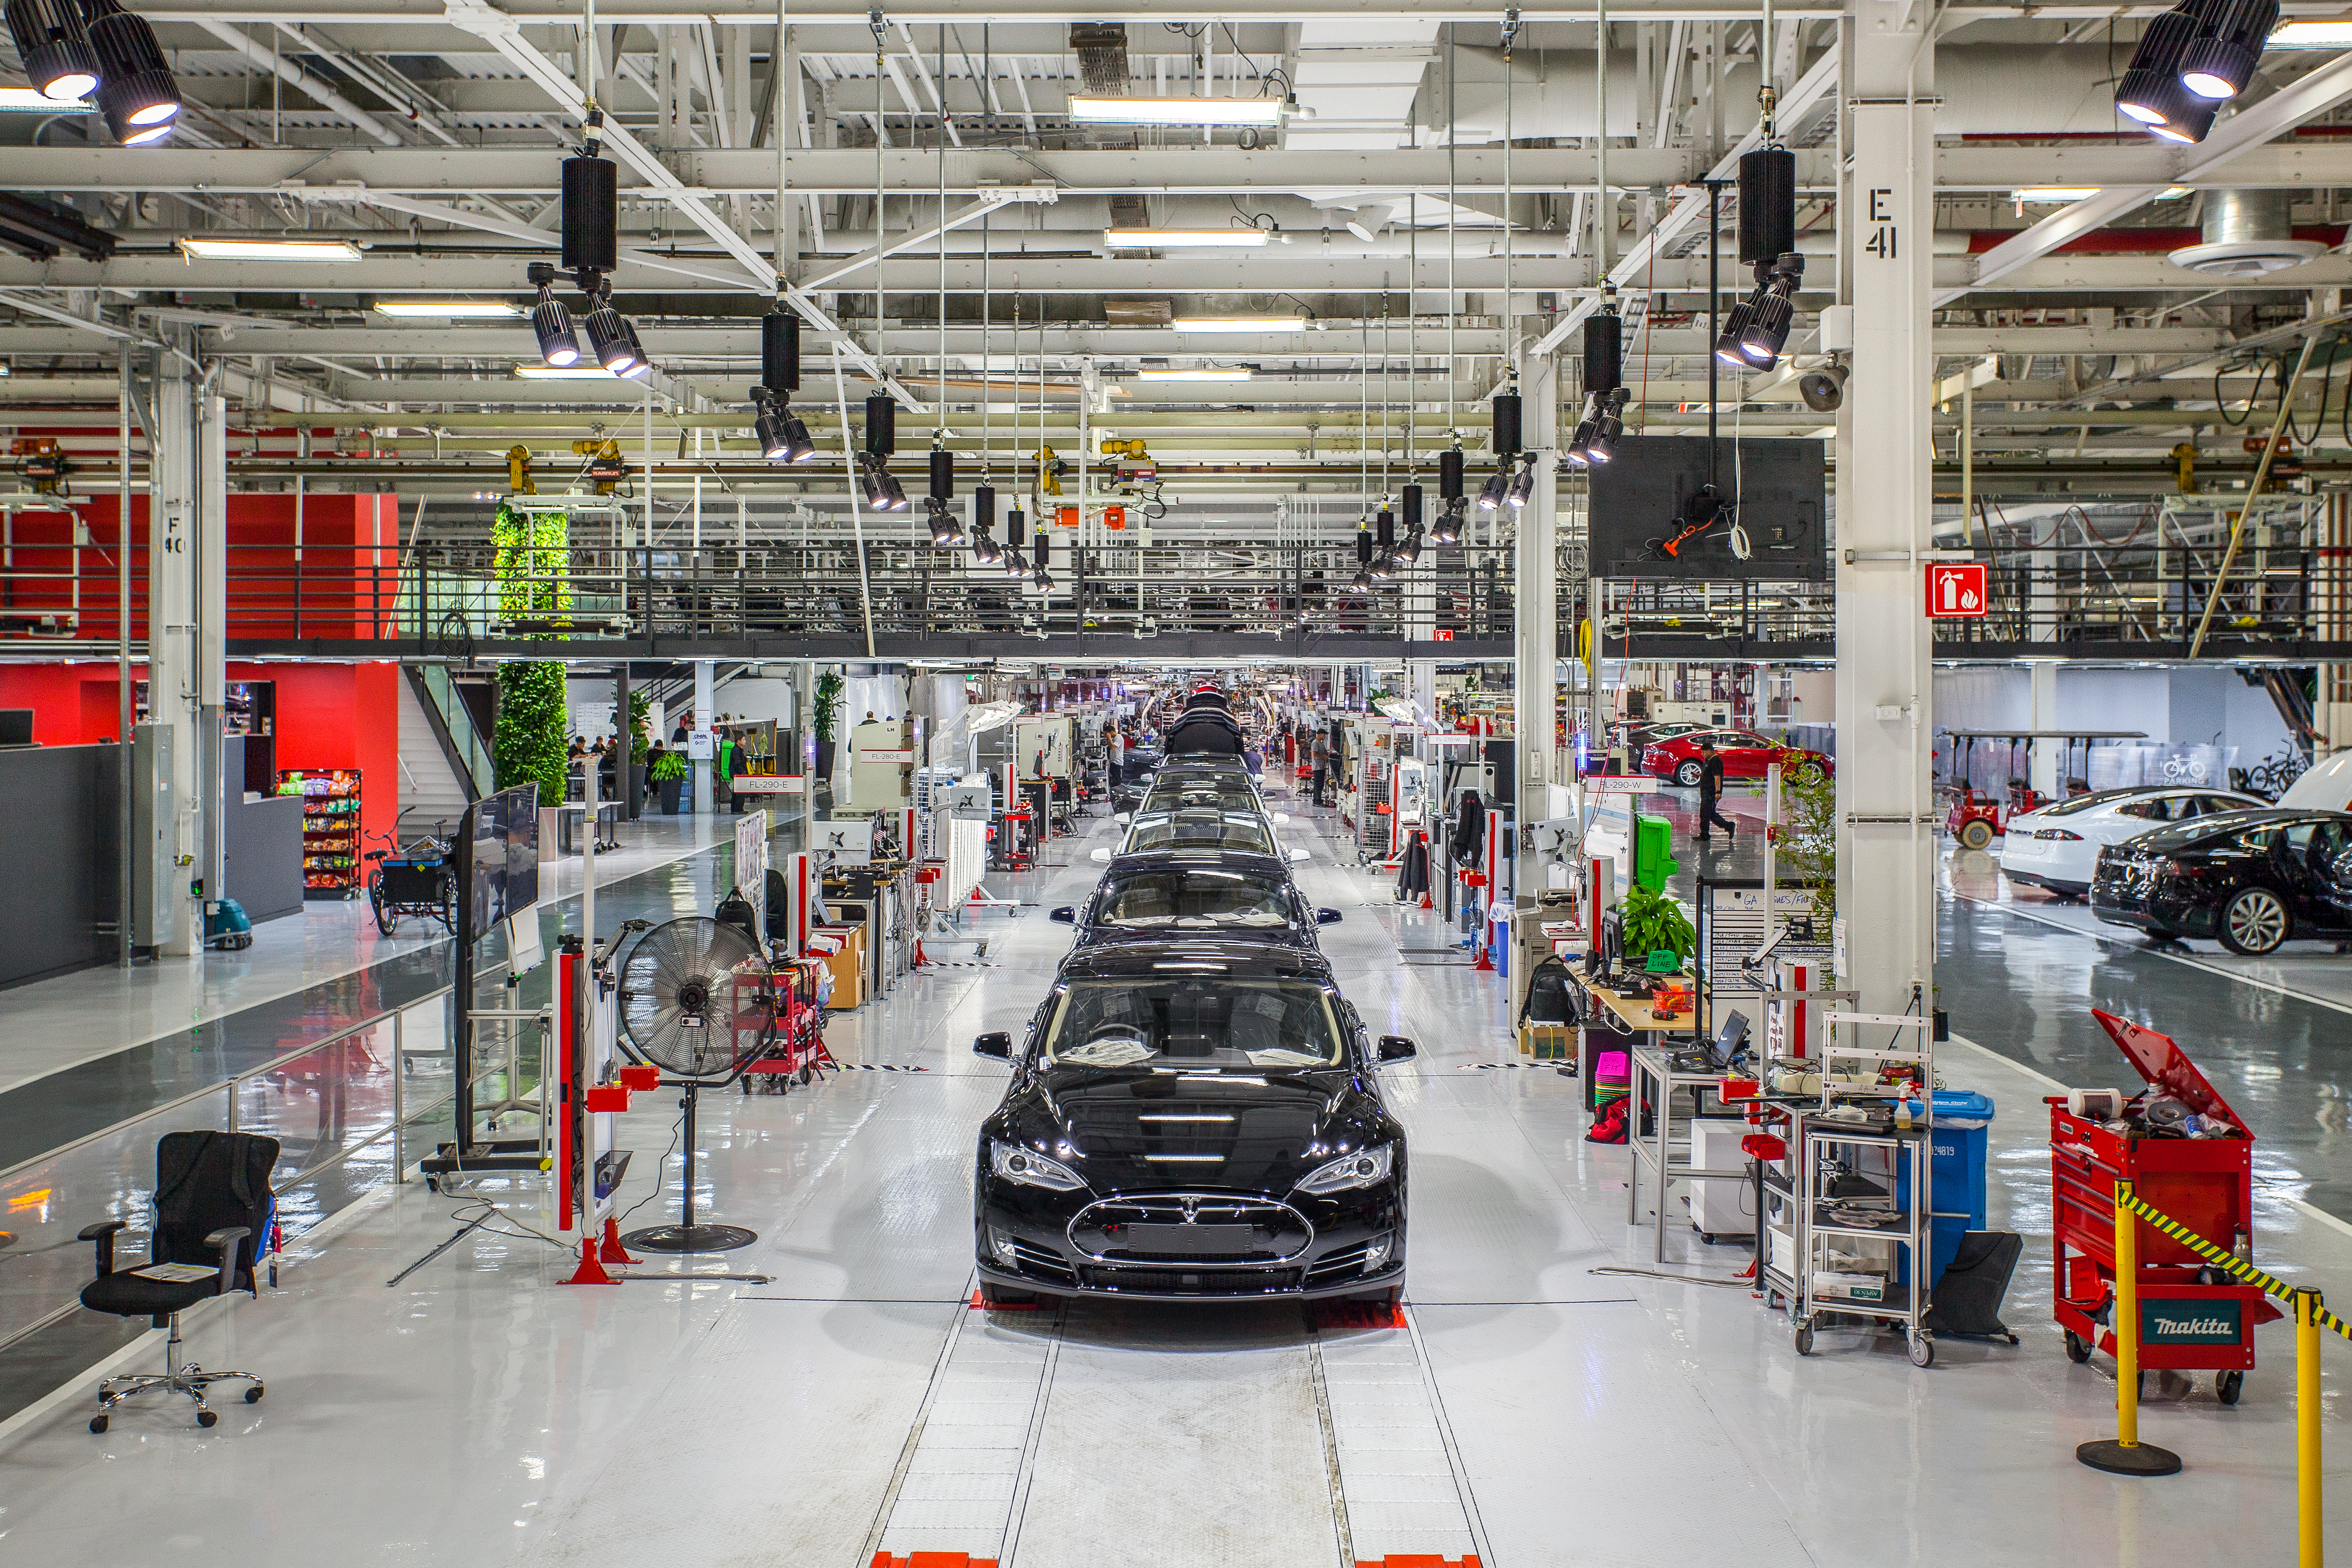 """Elon Musk says claims of poor working conditions at Tesla are """"morally outrageous"""""""